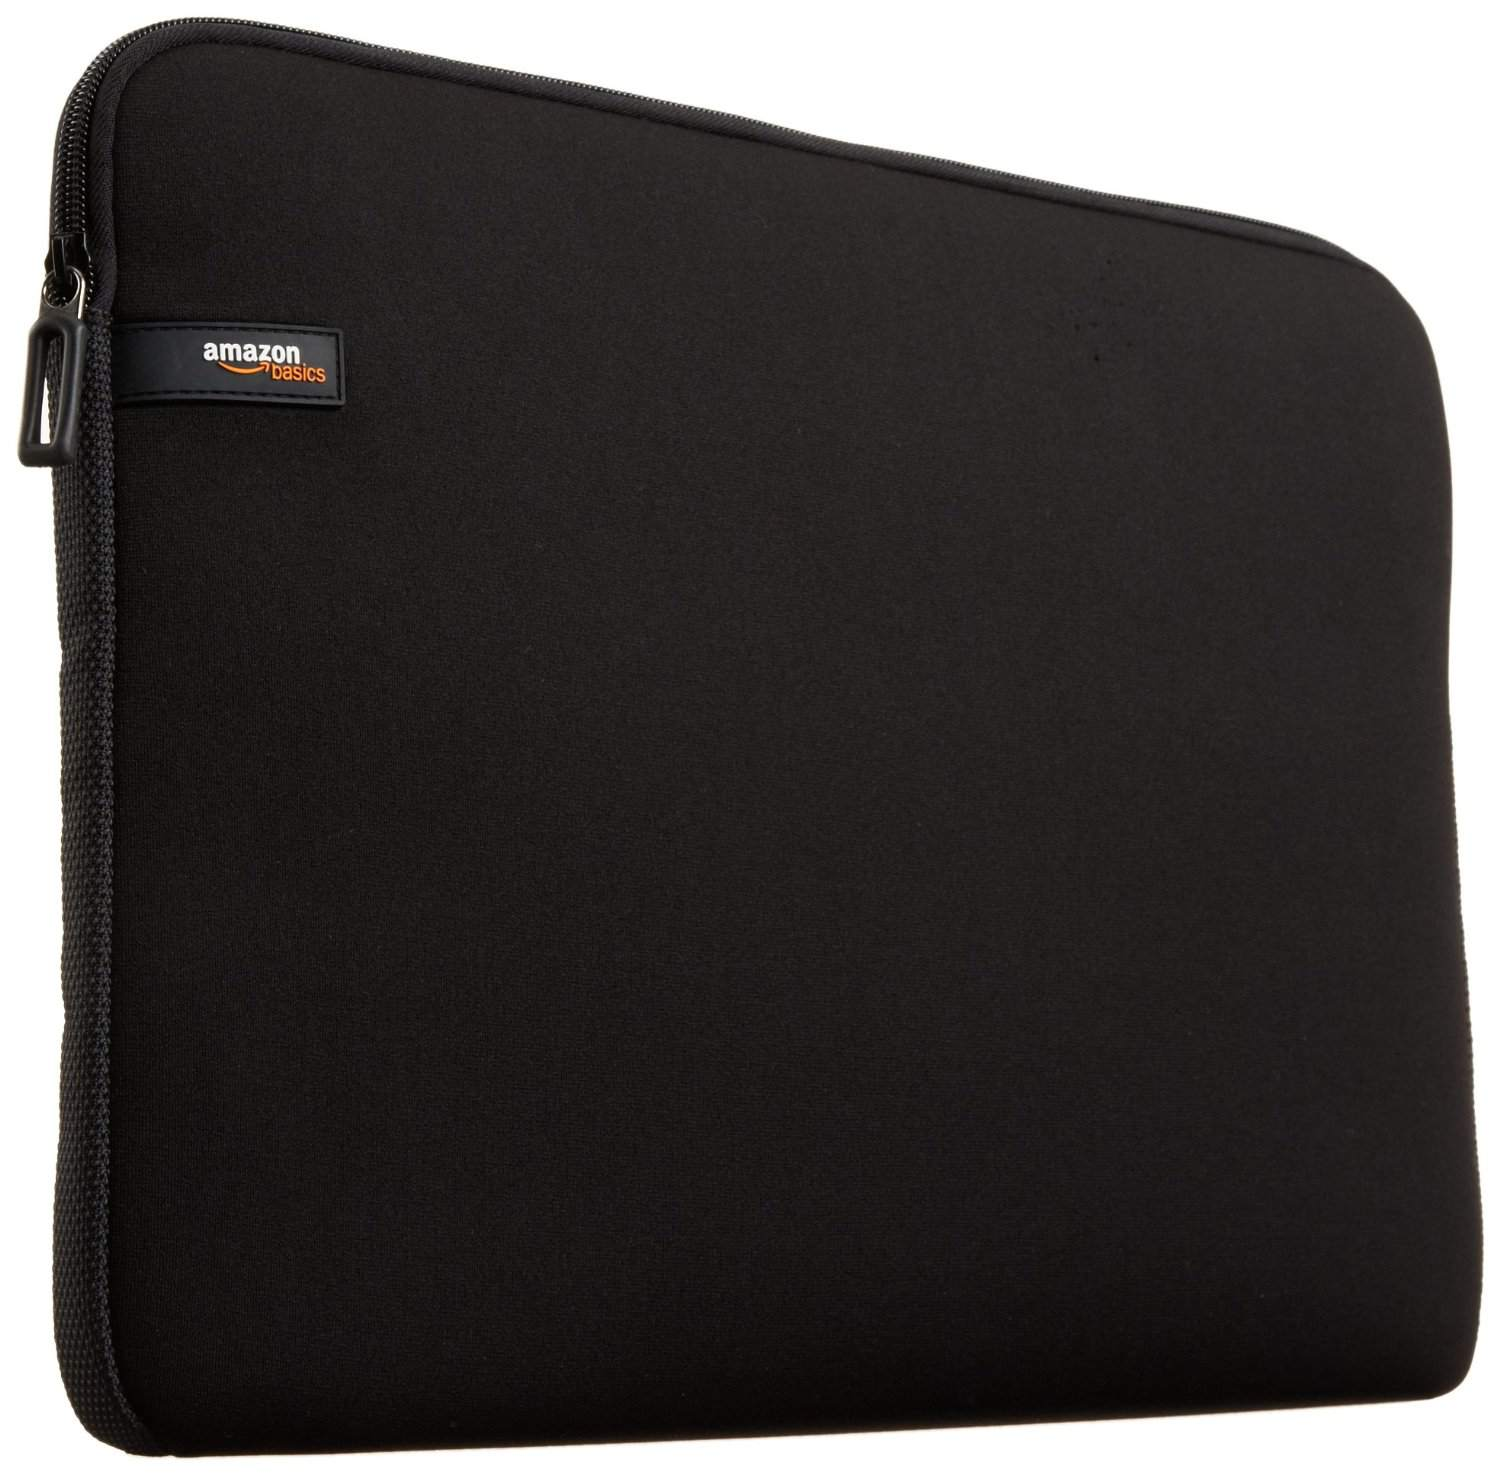 330a07a4eecd The 7 Best Laptop Cases and Sleeves of 2019